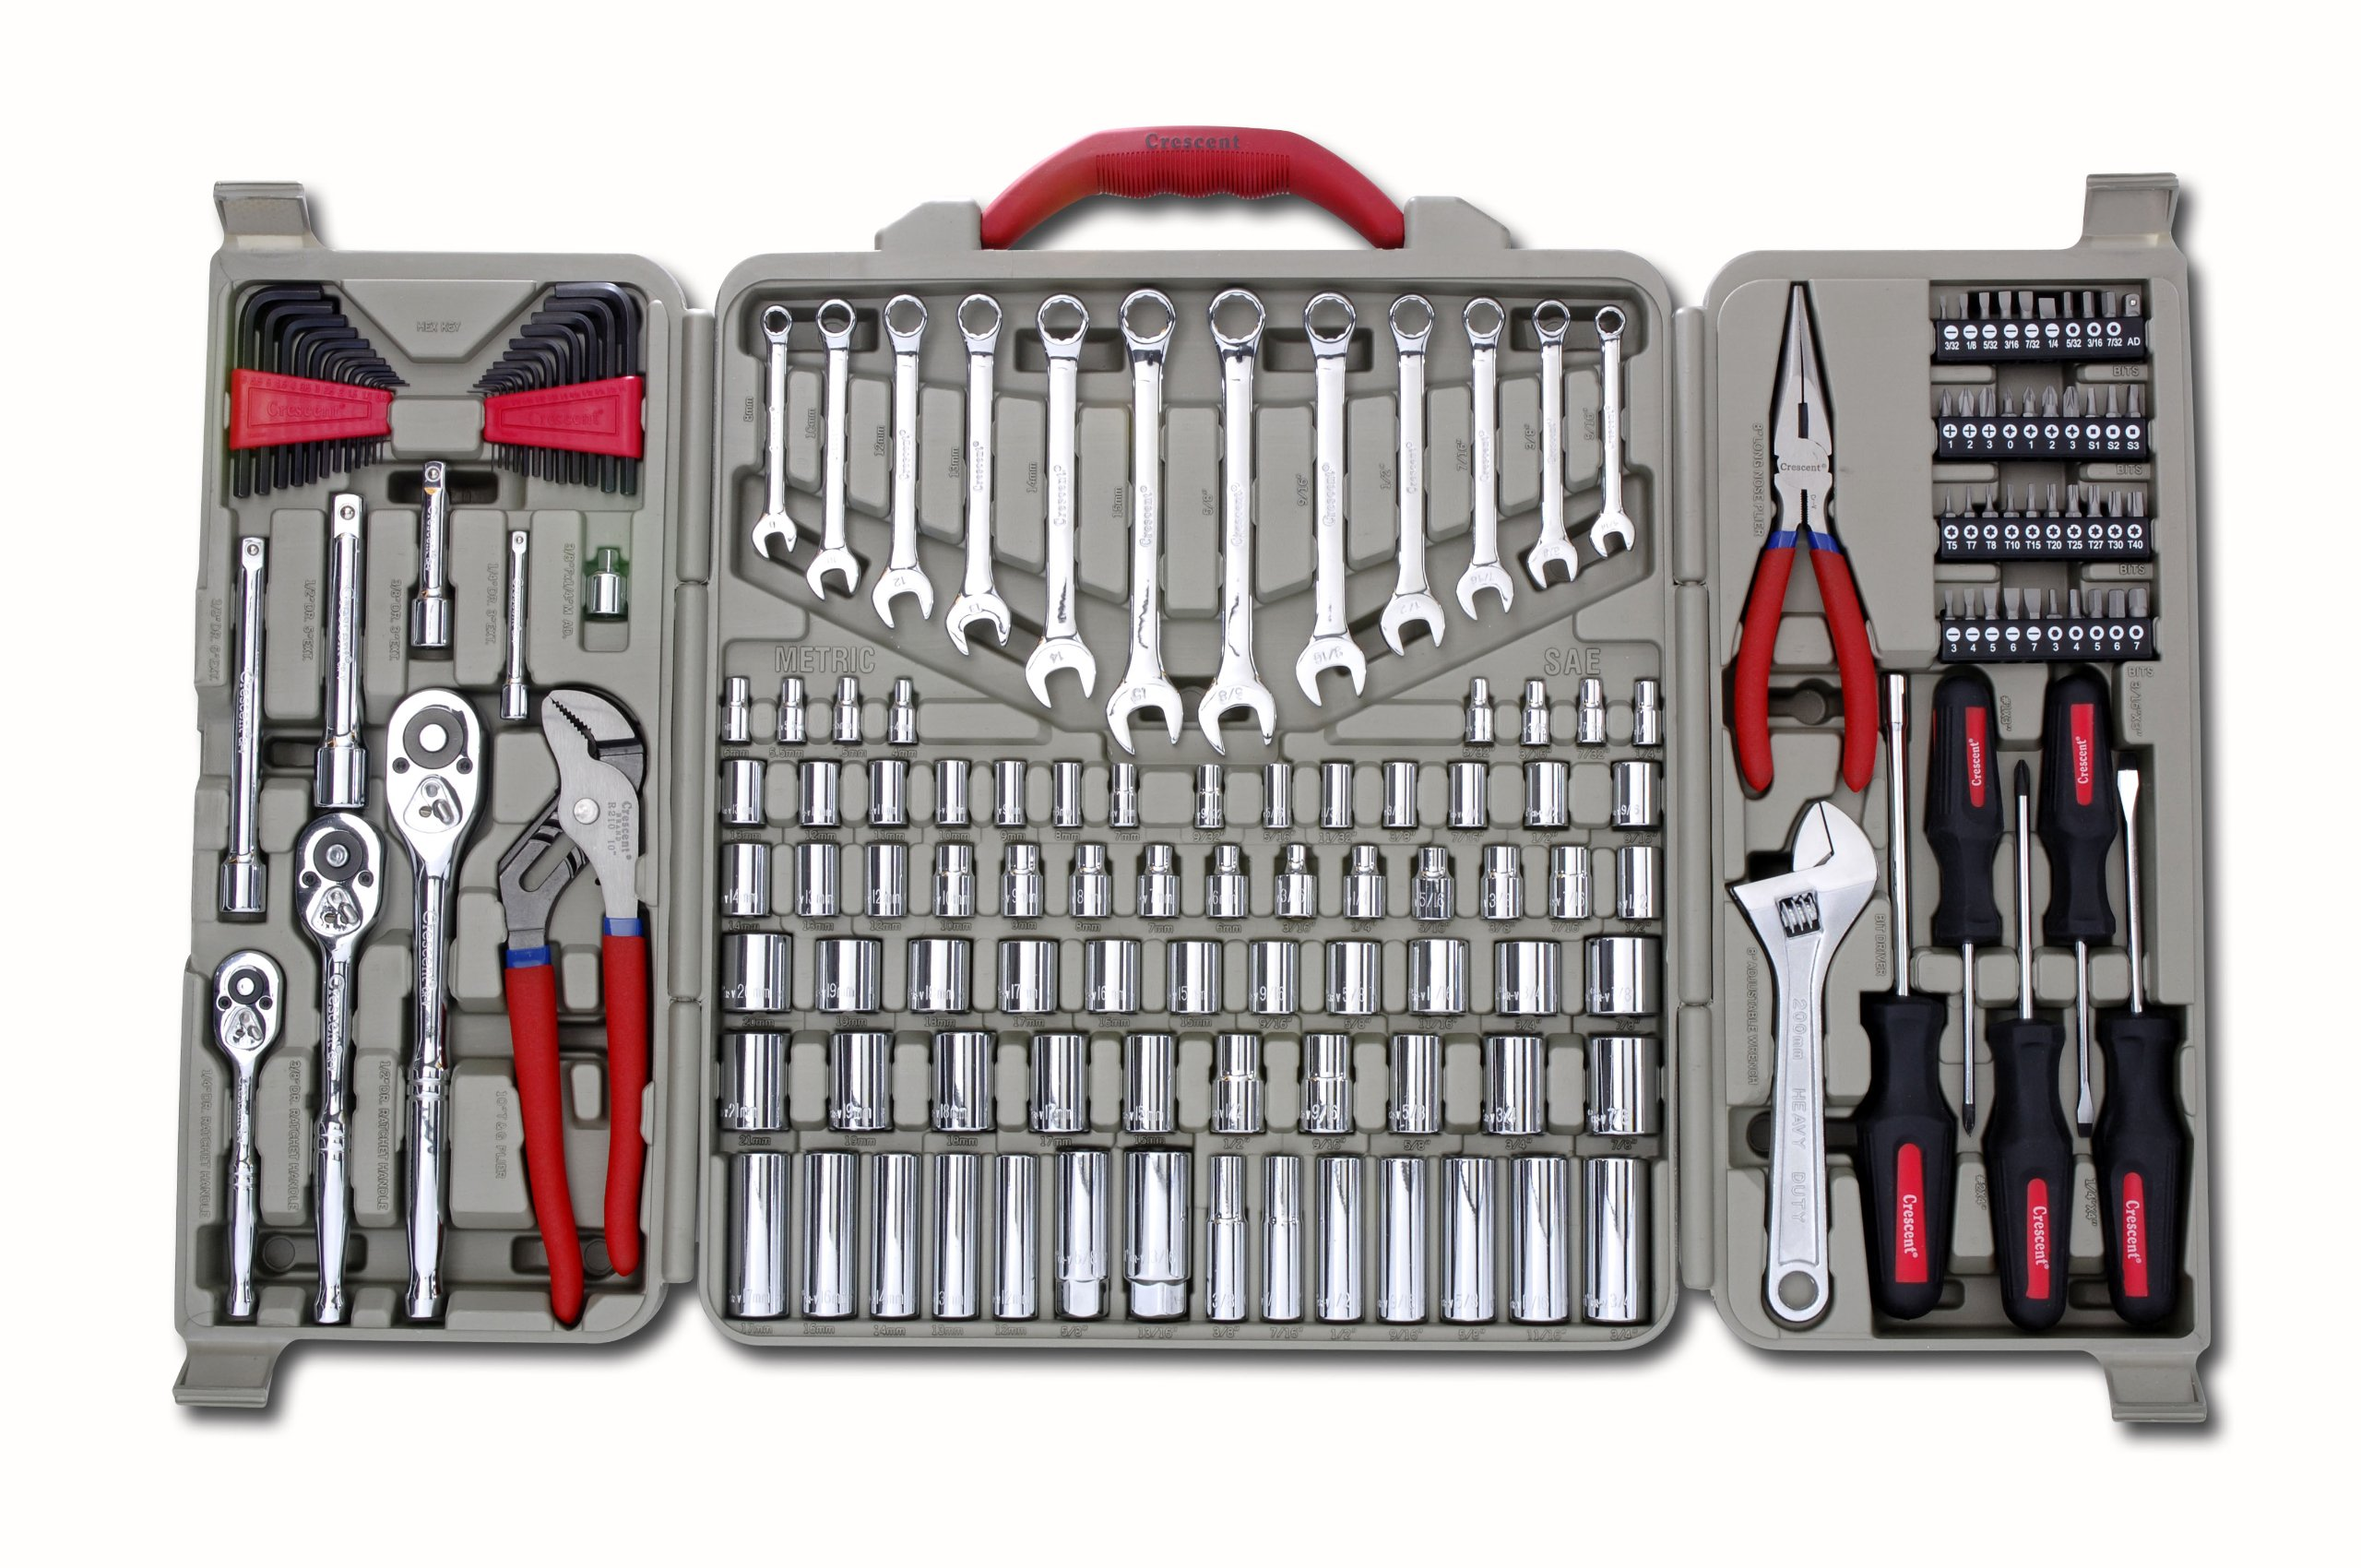 Crescent 170-Piece Mechanics Tool Set [Discontinued by Manufacturer] by Apex Tool Group